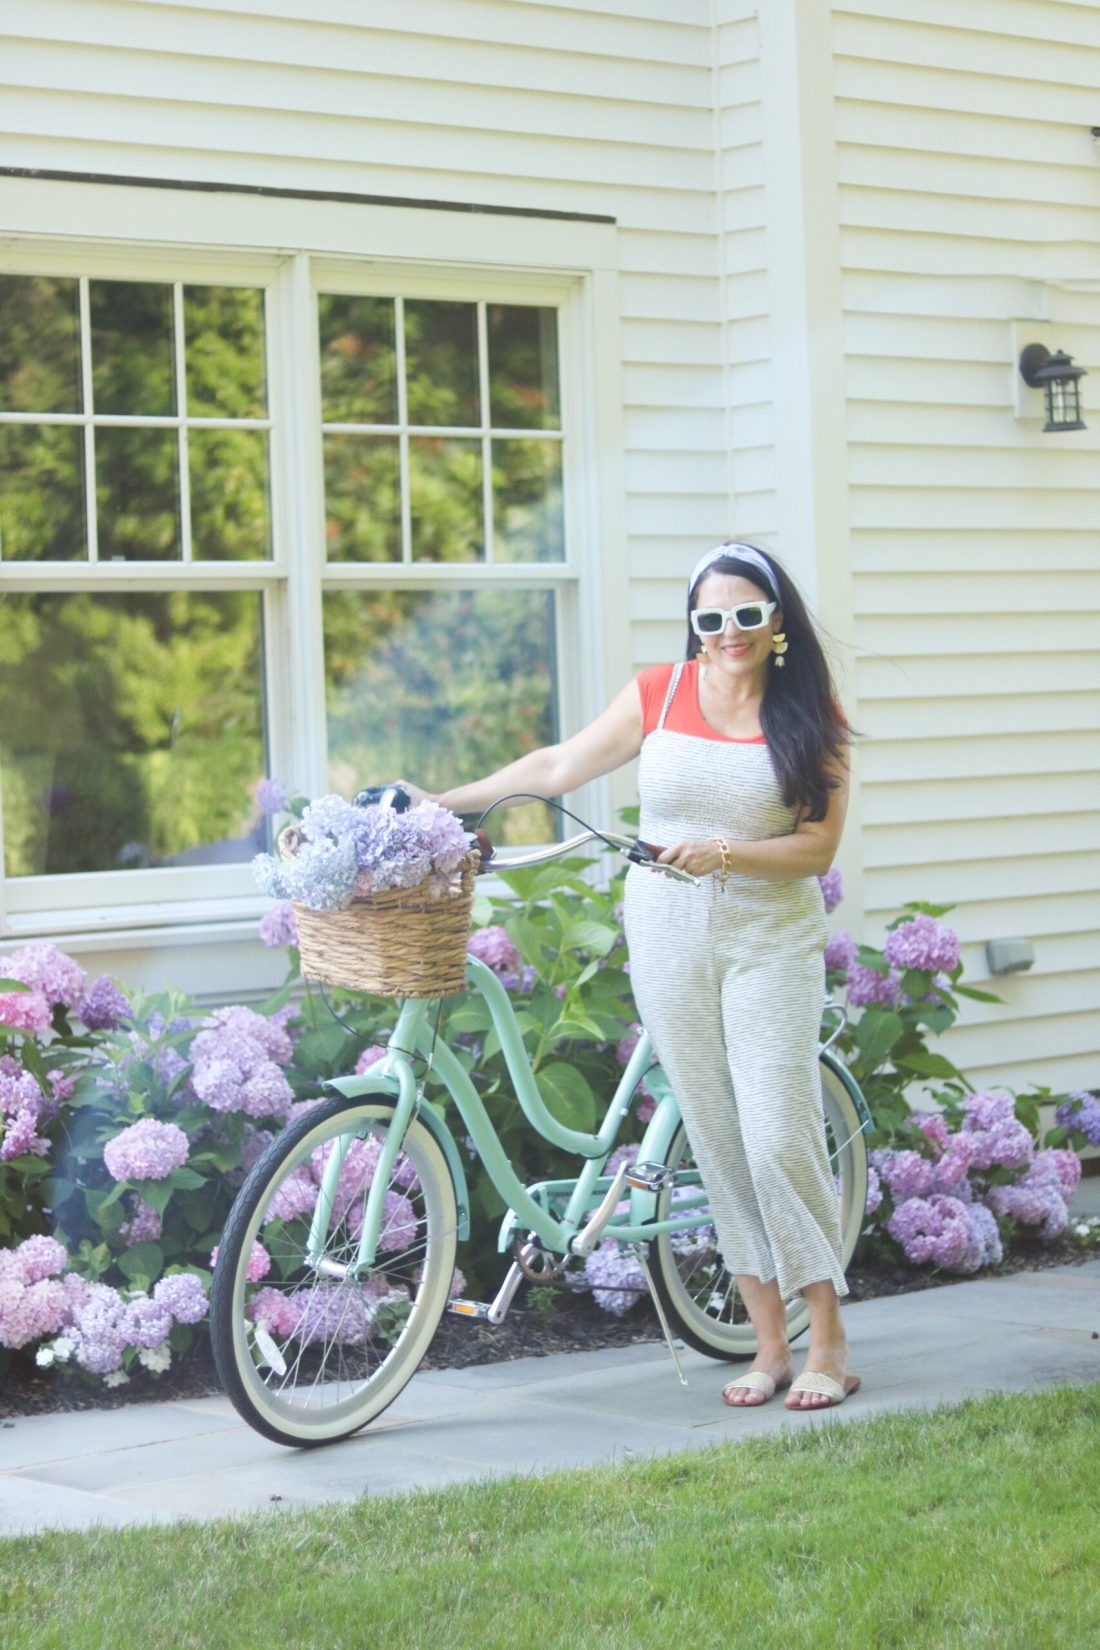 3 favorite simple summer activities that we like to do as a family and is budget friendly will create lasting memories. || DARLING darleen Top CT Lifestyle Blogger